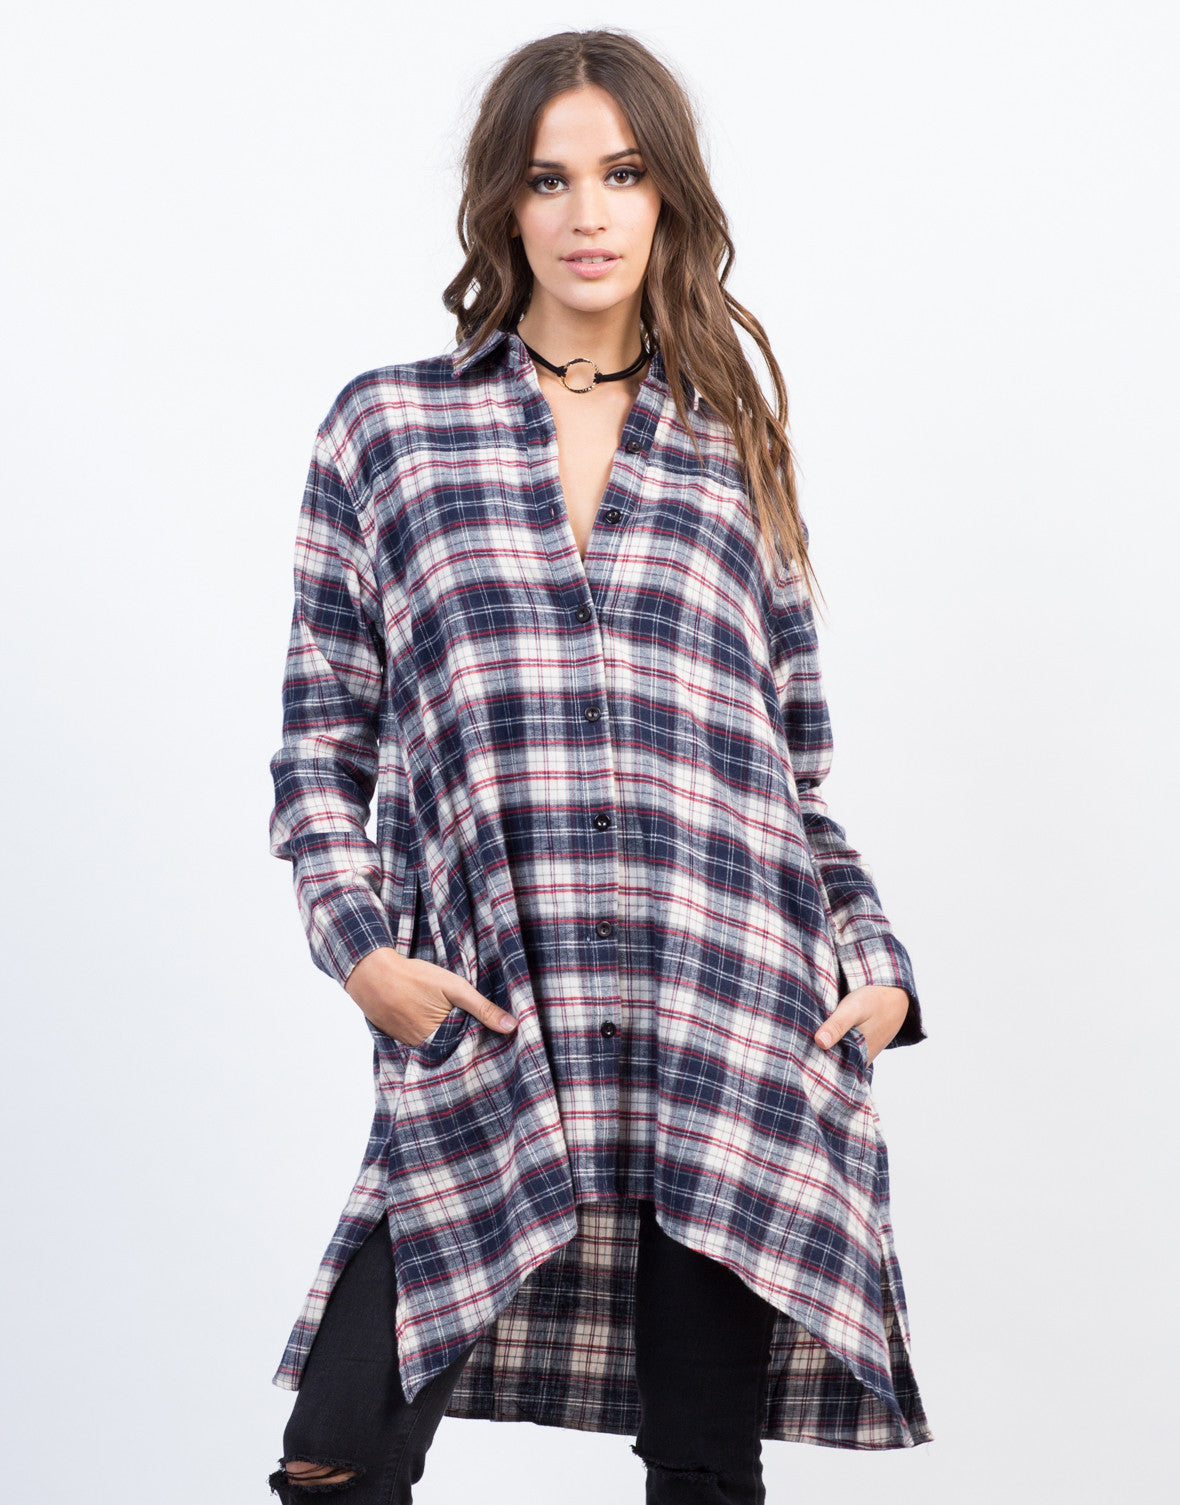 Flowy Flannel Shirt Dress Plaid Dress Checkered Top 2020ave